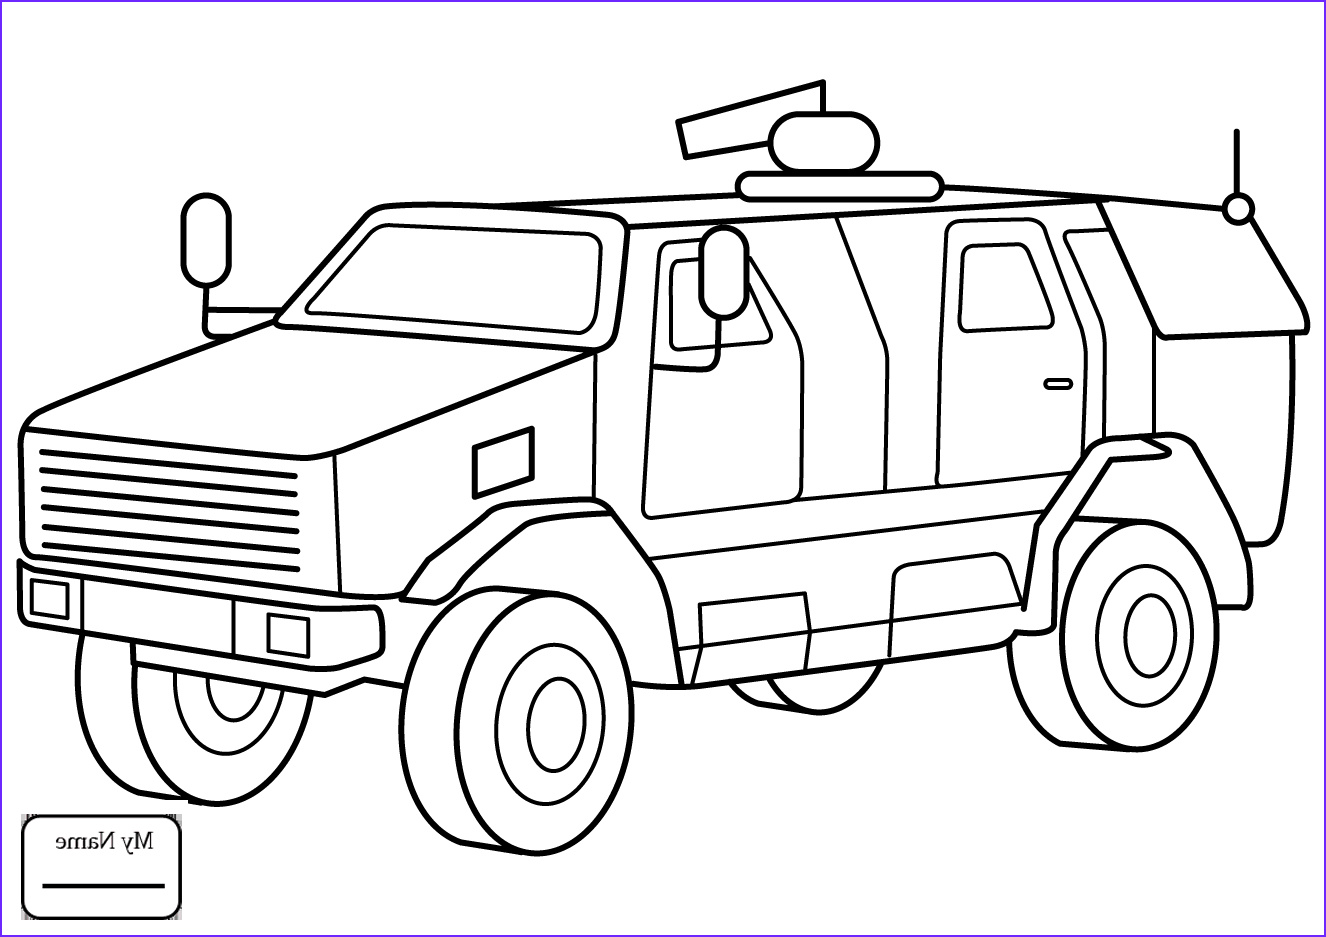 Navy Coloring Pages Unique Stock the Best Free Military Drawing Images Download From 1061